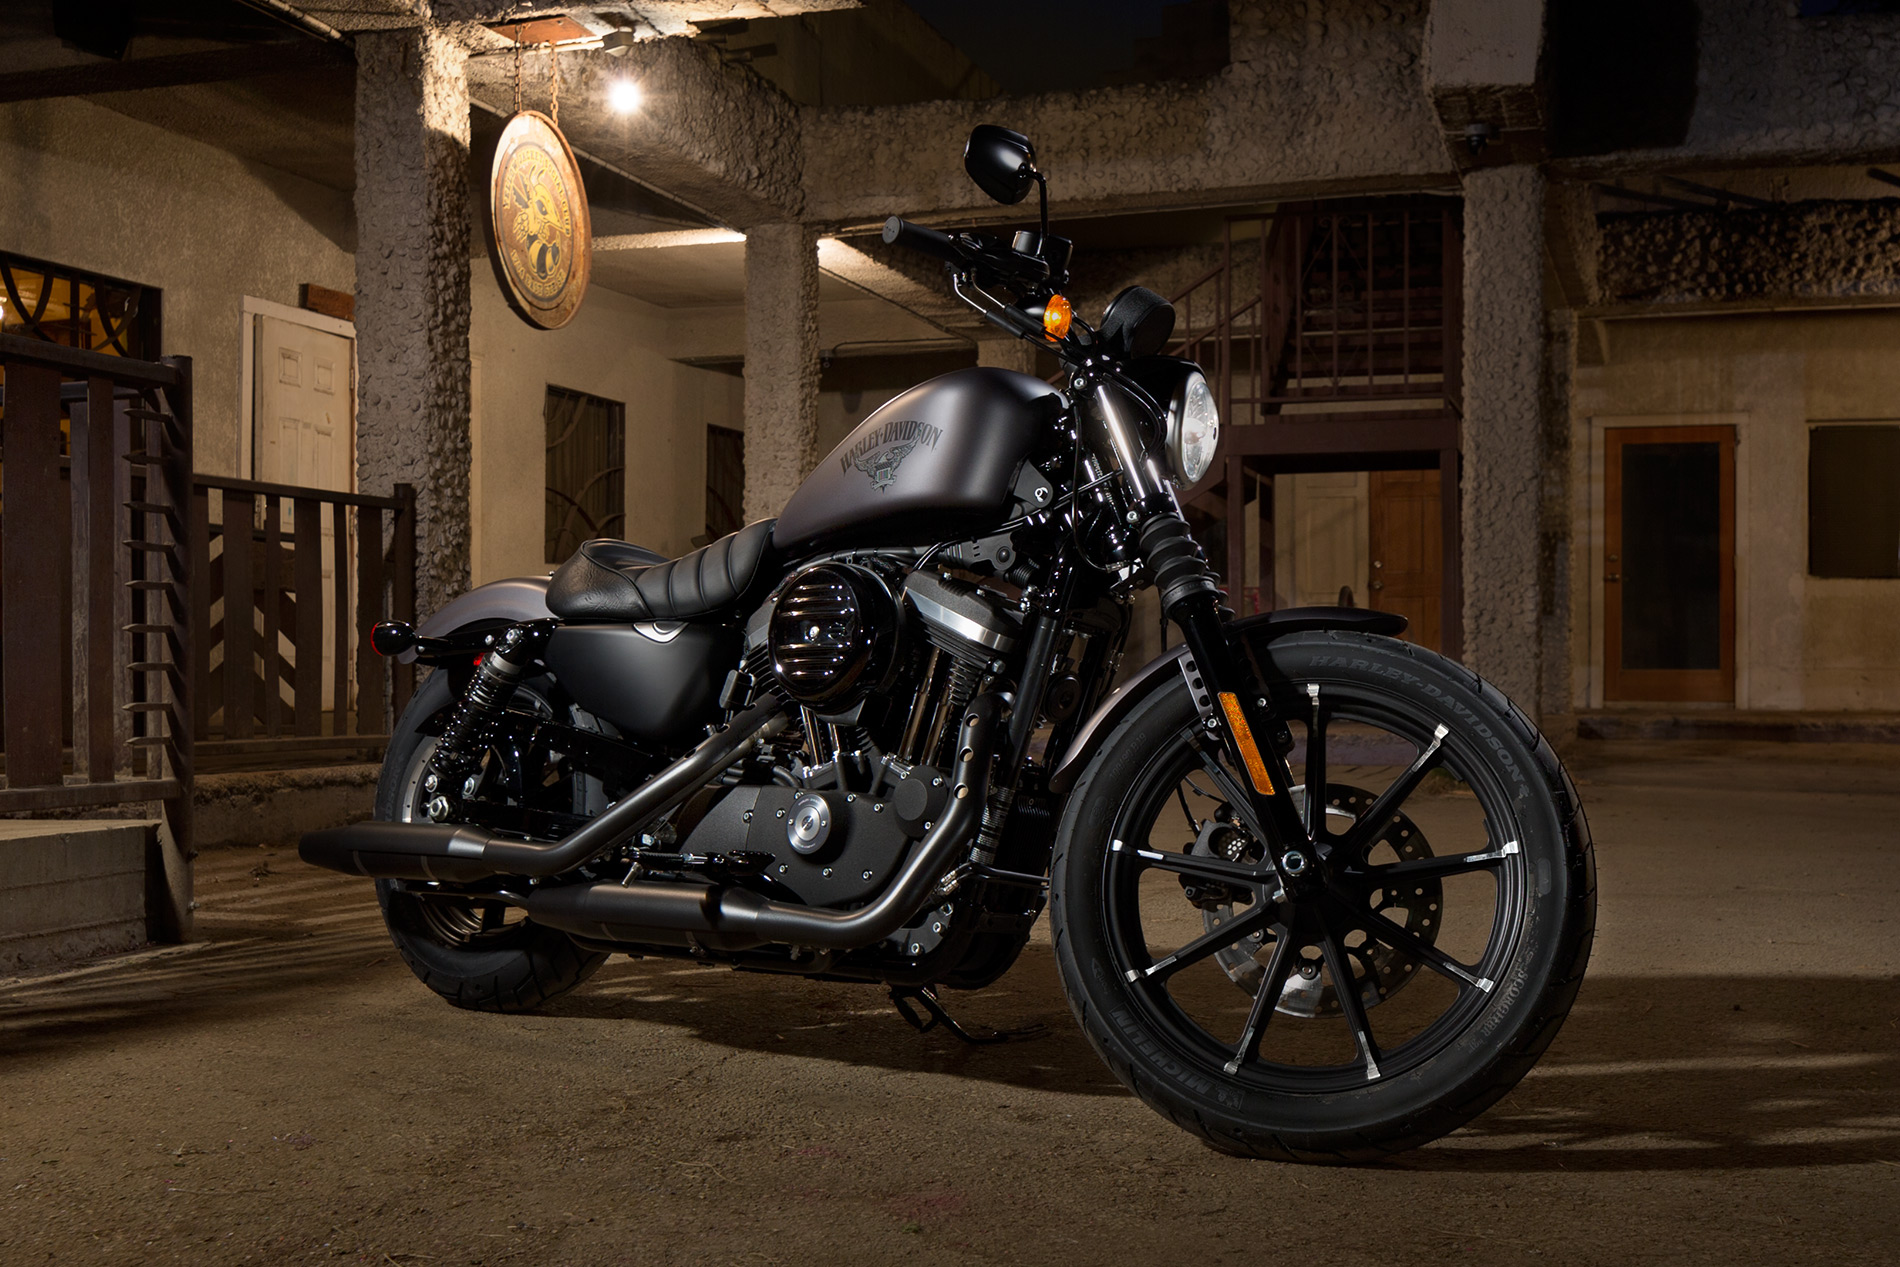 2016 harley davidson sportster iron 883 reviews price. Black Bedroom Furniture Sets. Home Design Ideas